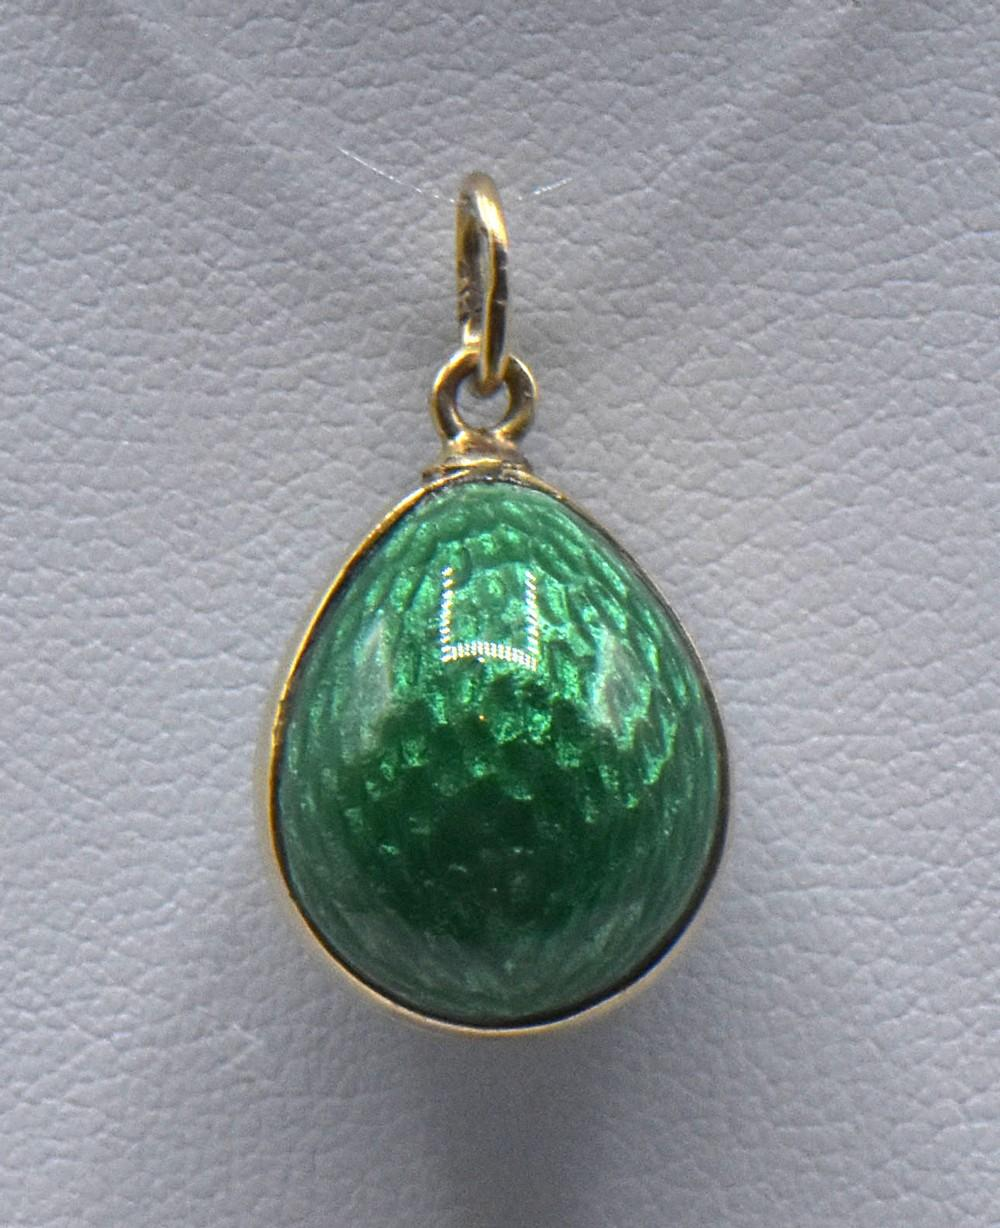 Two Russian Faberge Guilloche Gold Egg Pendants